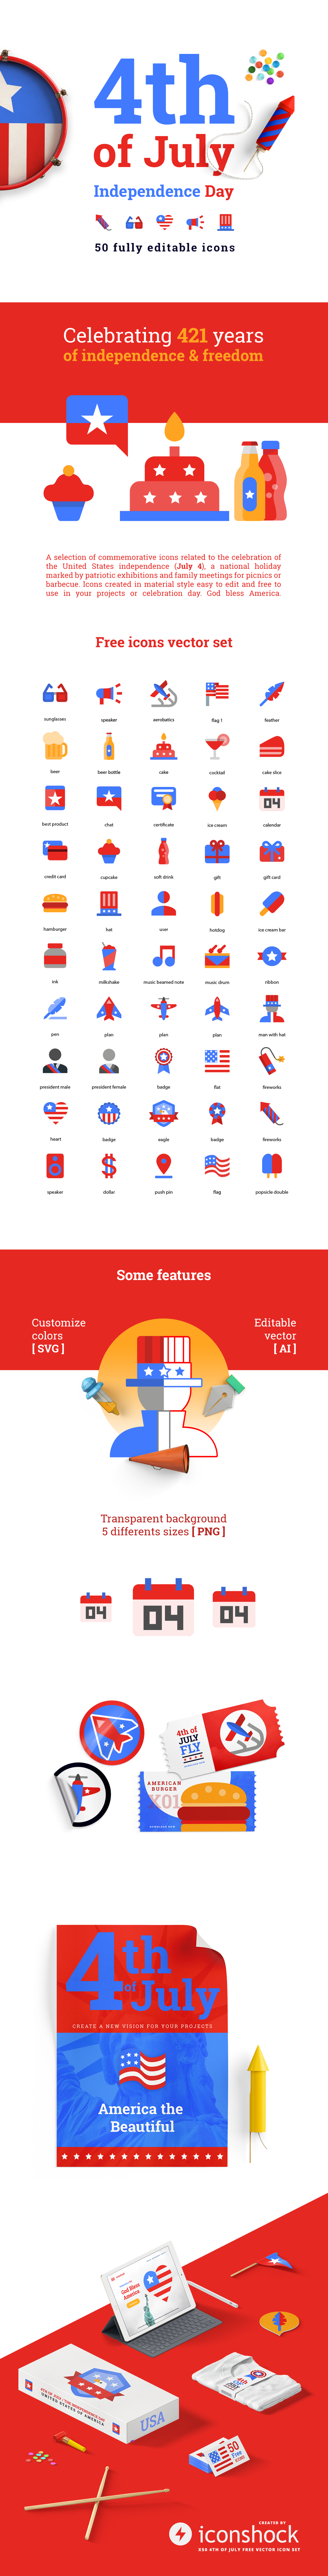 4th_of_july_free_icons